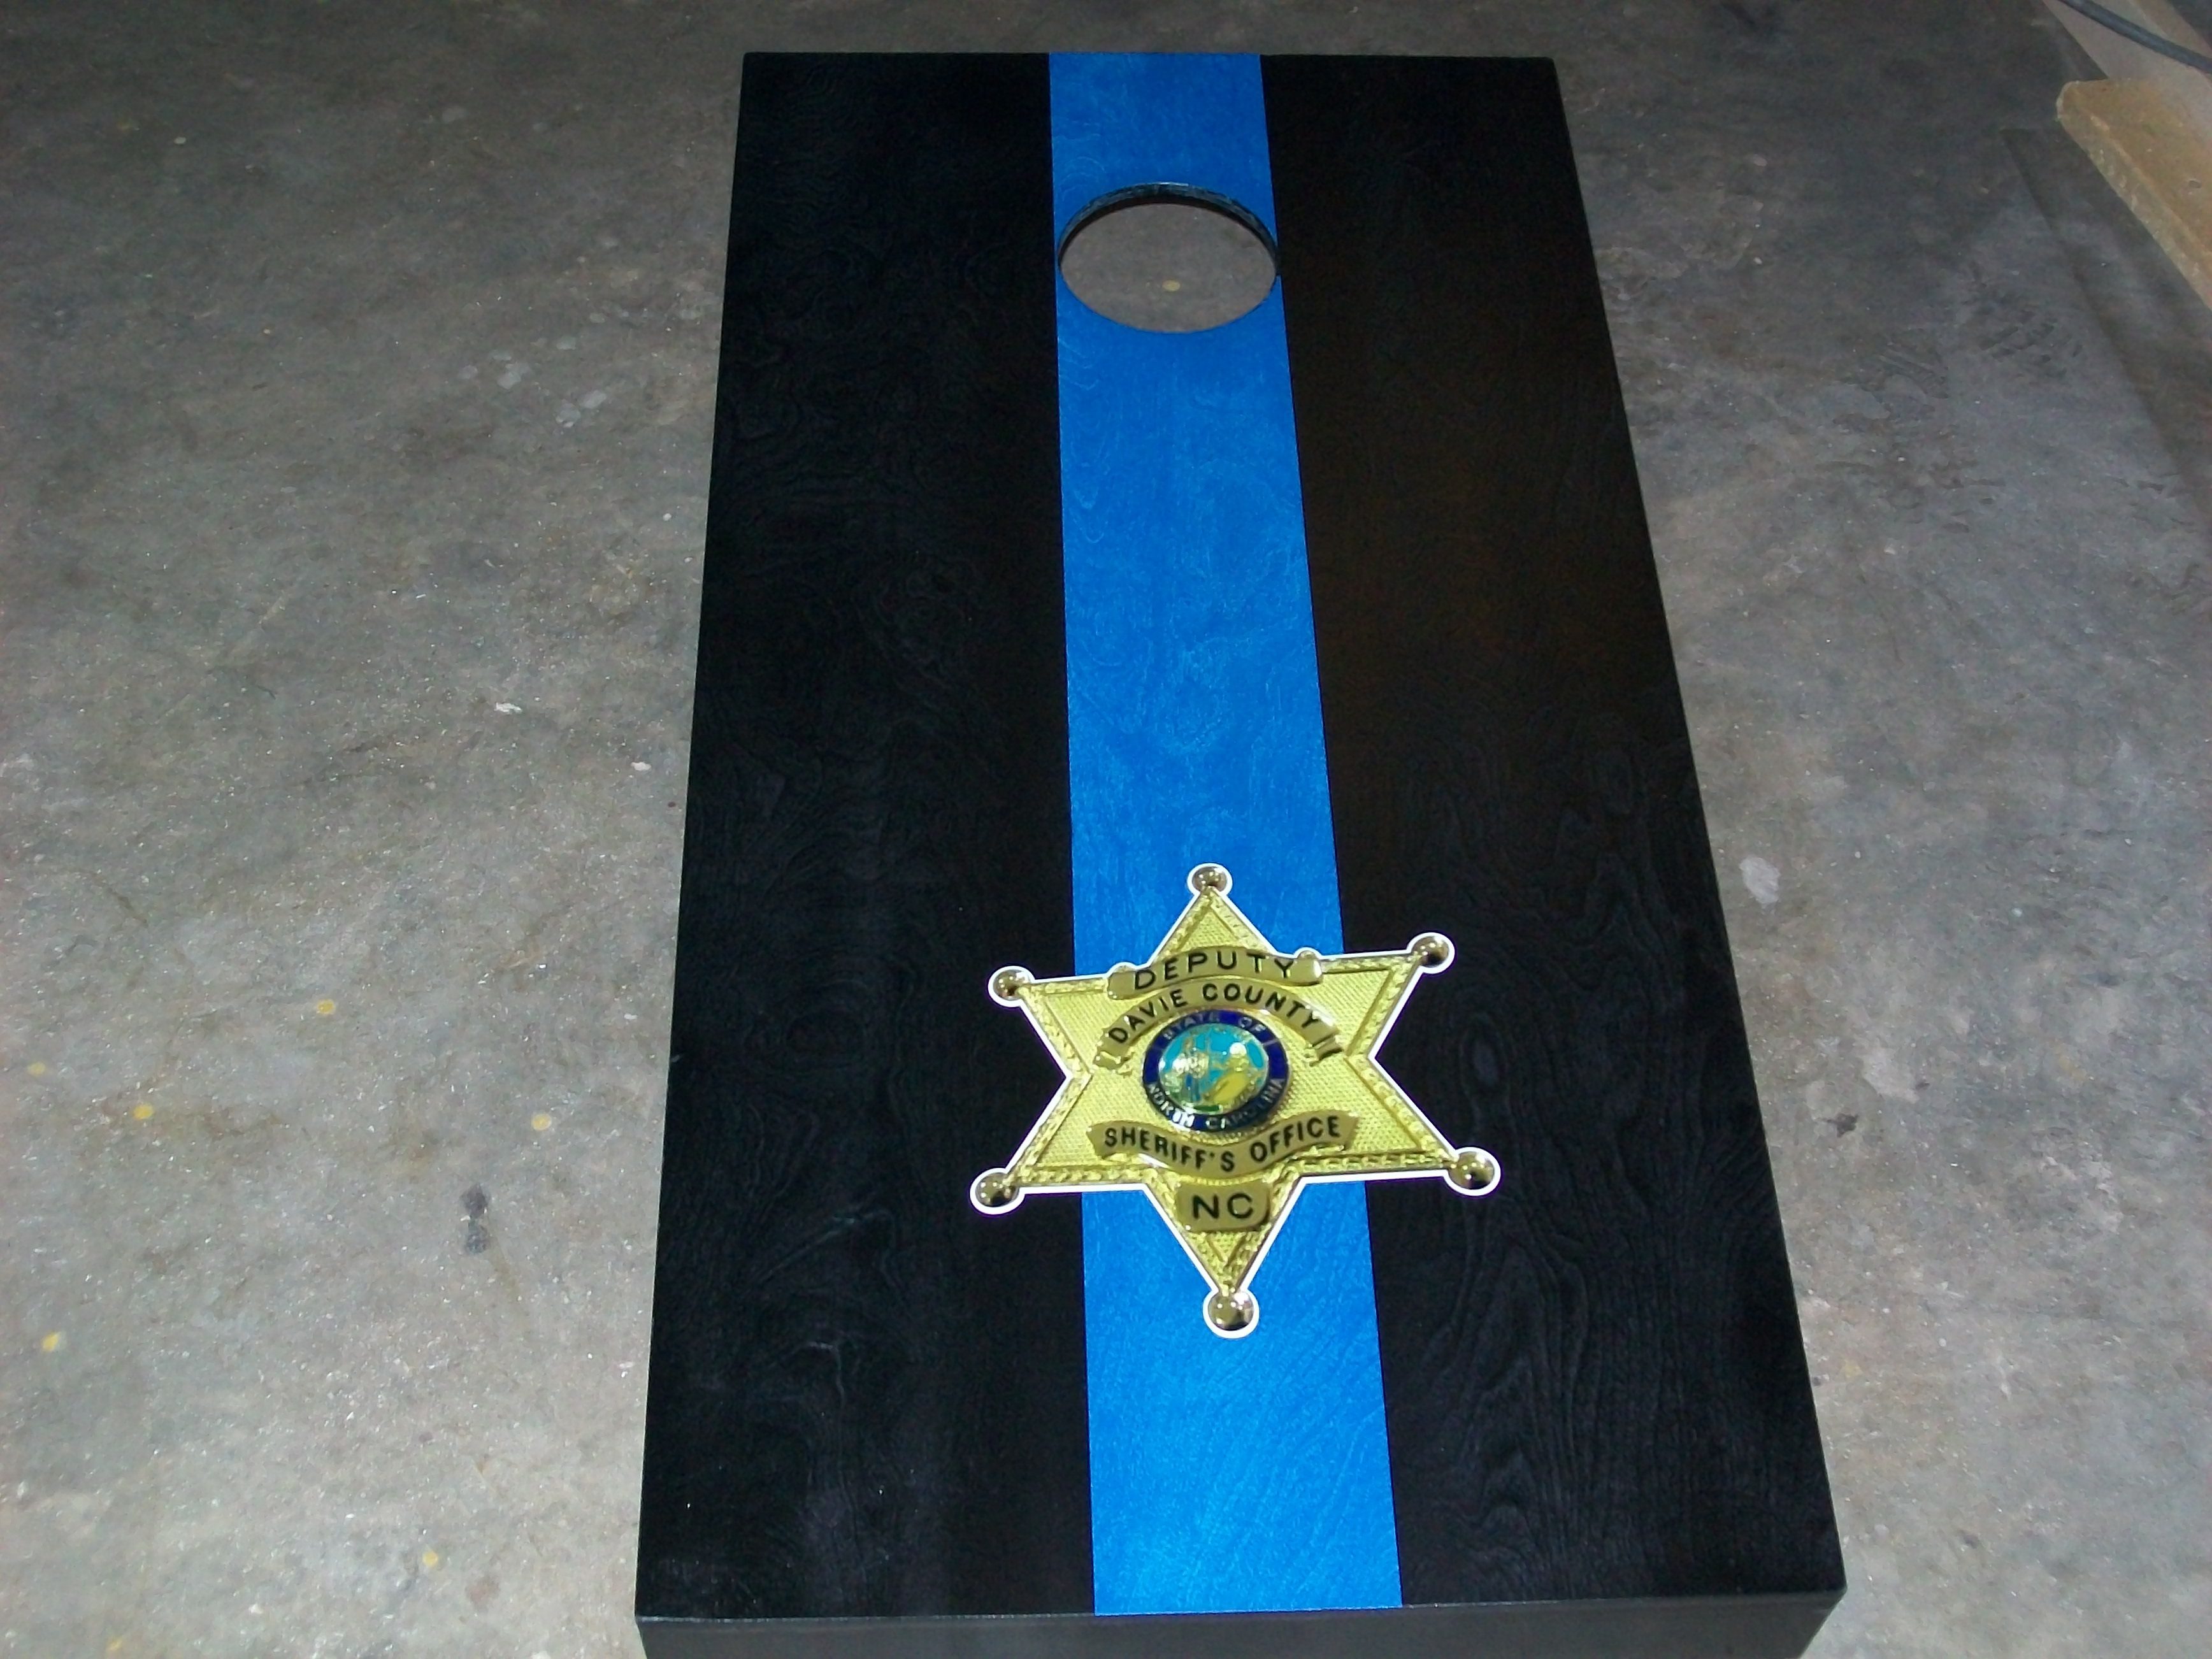 thin blue line cornhole set customize it by adding your department badge or patch - Cornhole Sets